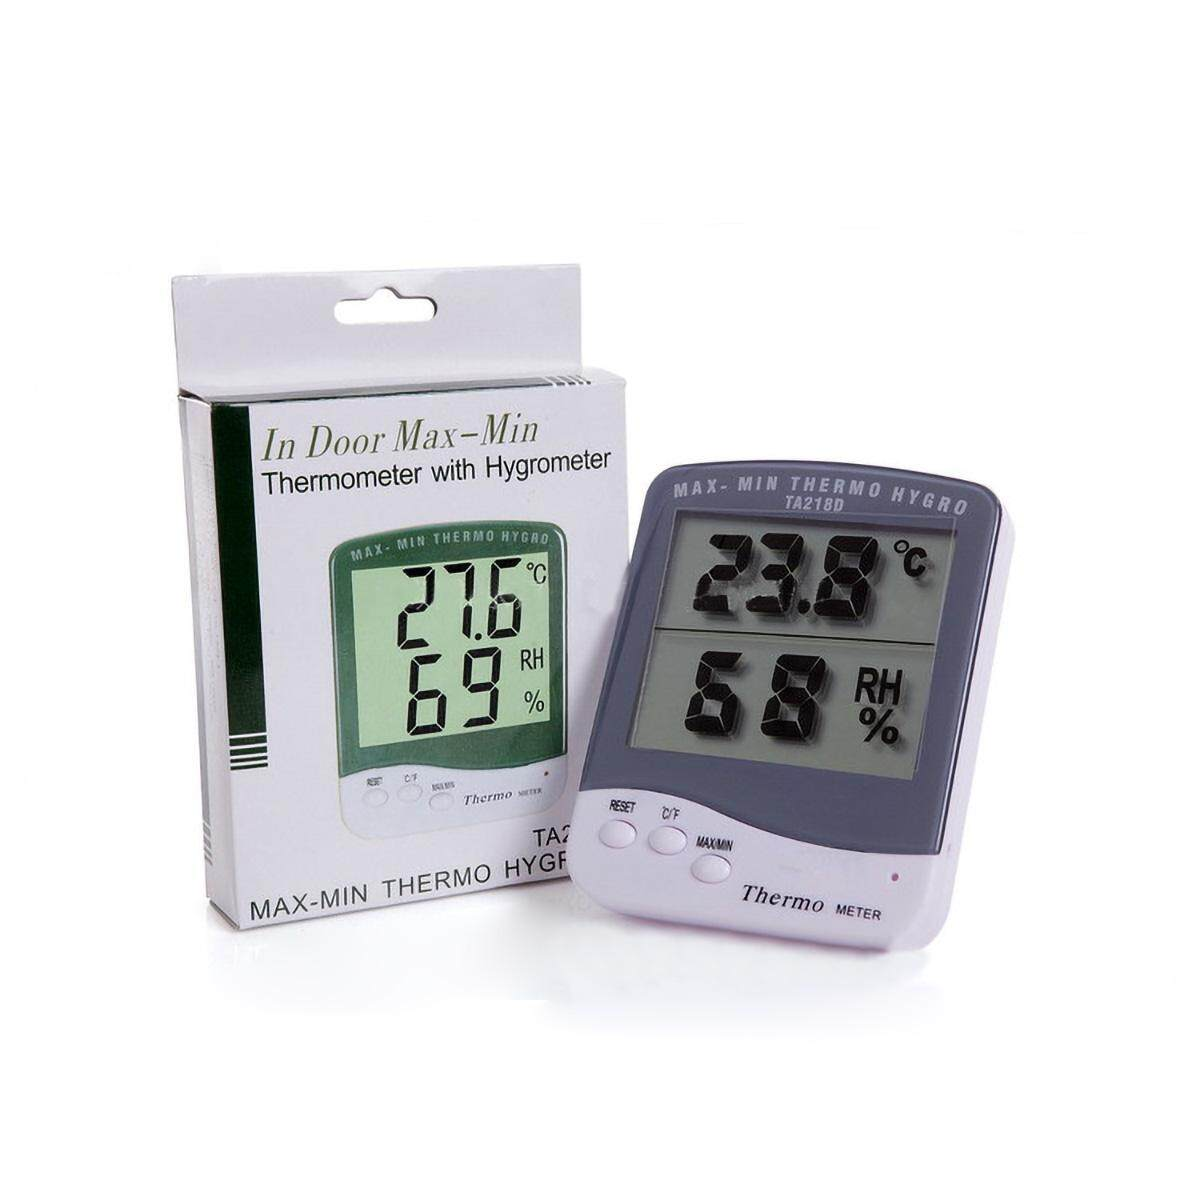 Thermometer Large Screen Display Electronic Thermometer And Hygrometer Thermometer Hygrometer